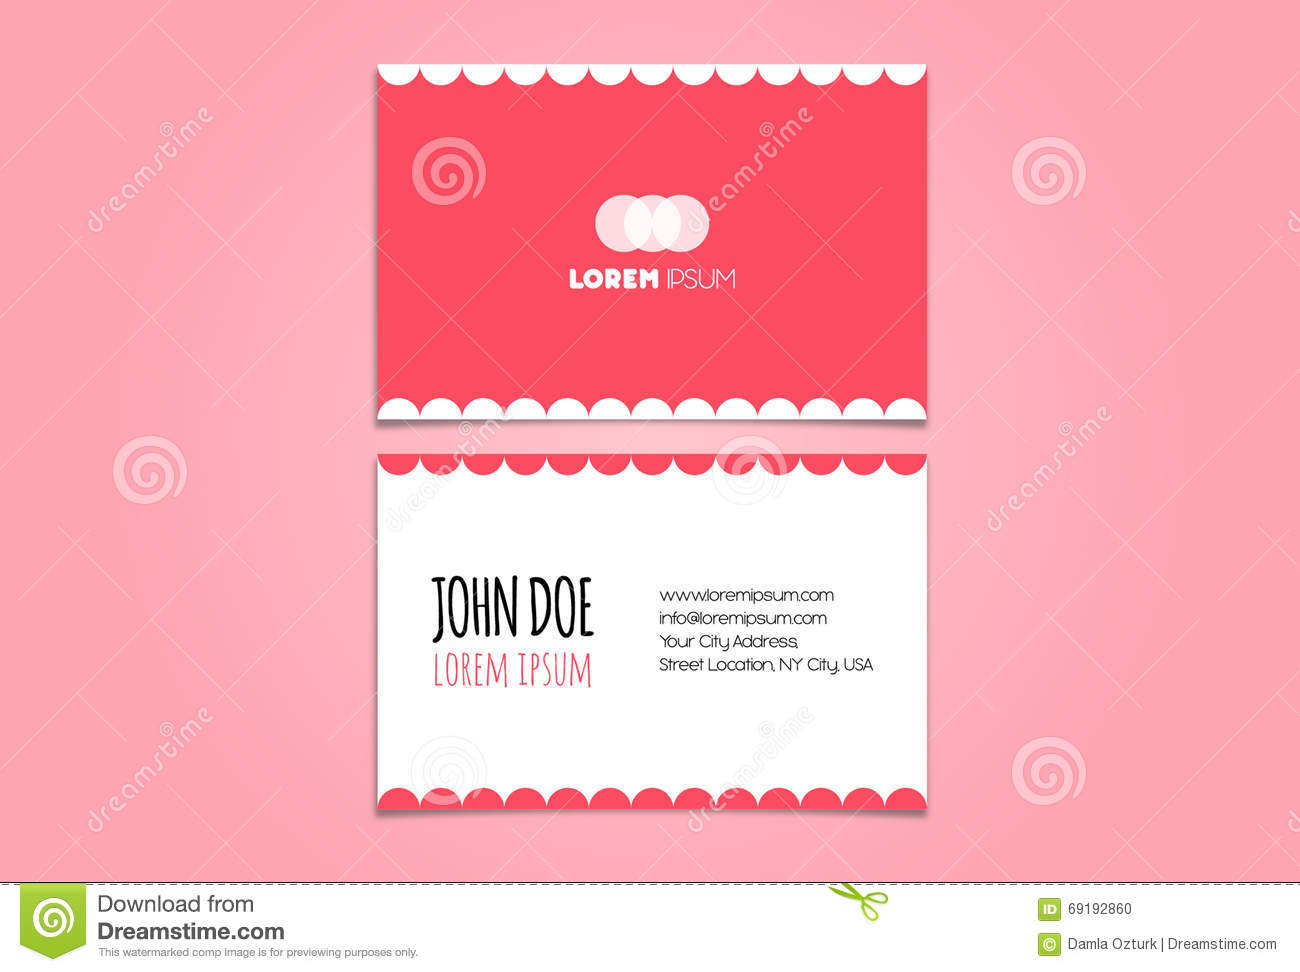 Funny Pink Business Card Design Template Stock Vector - Image ...